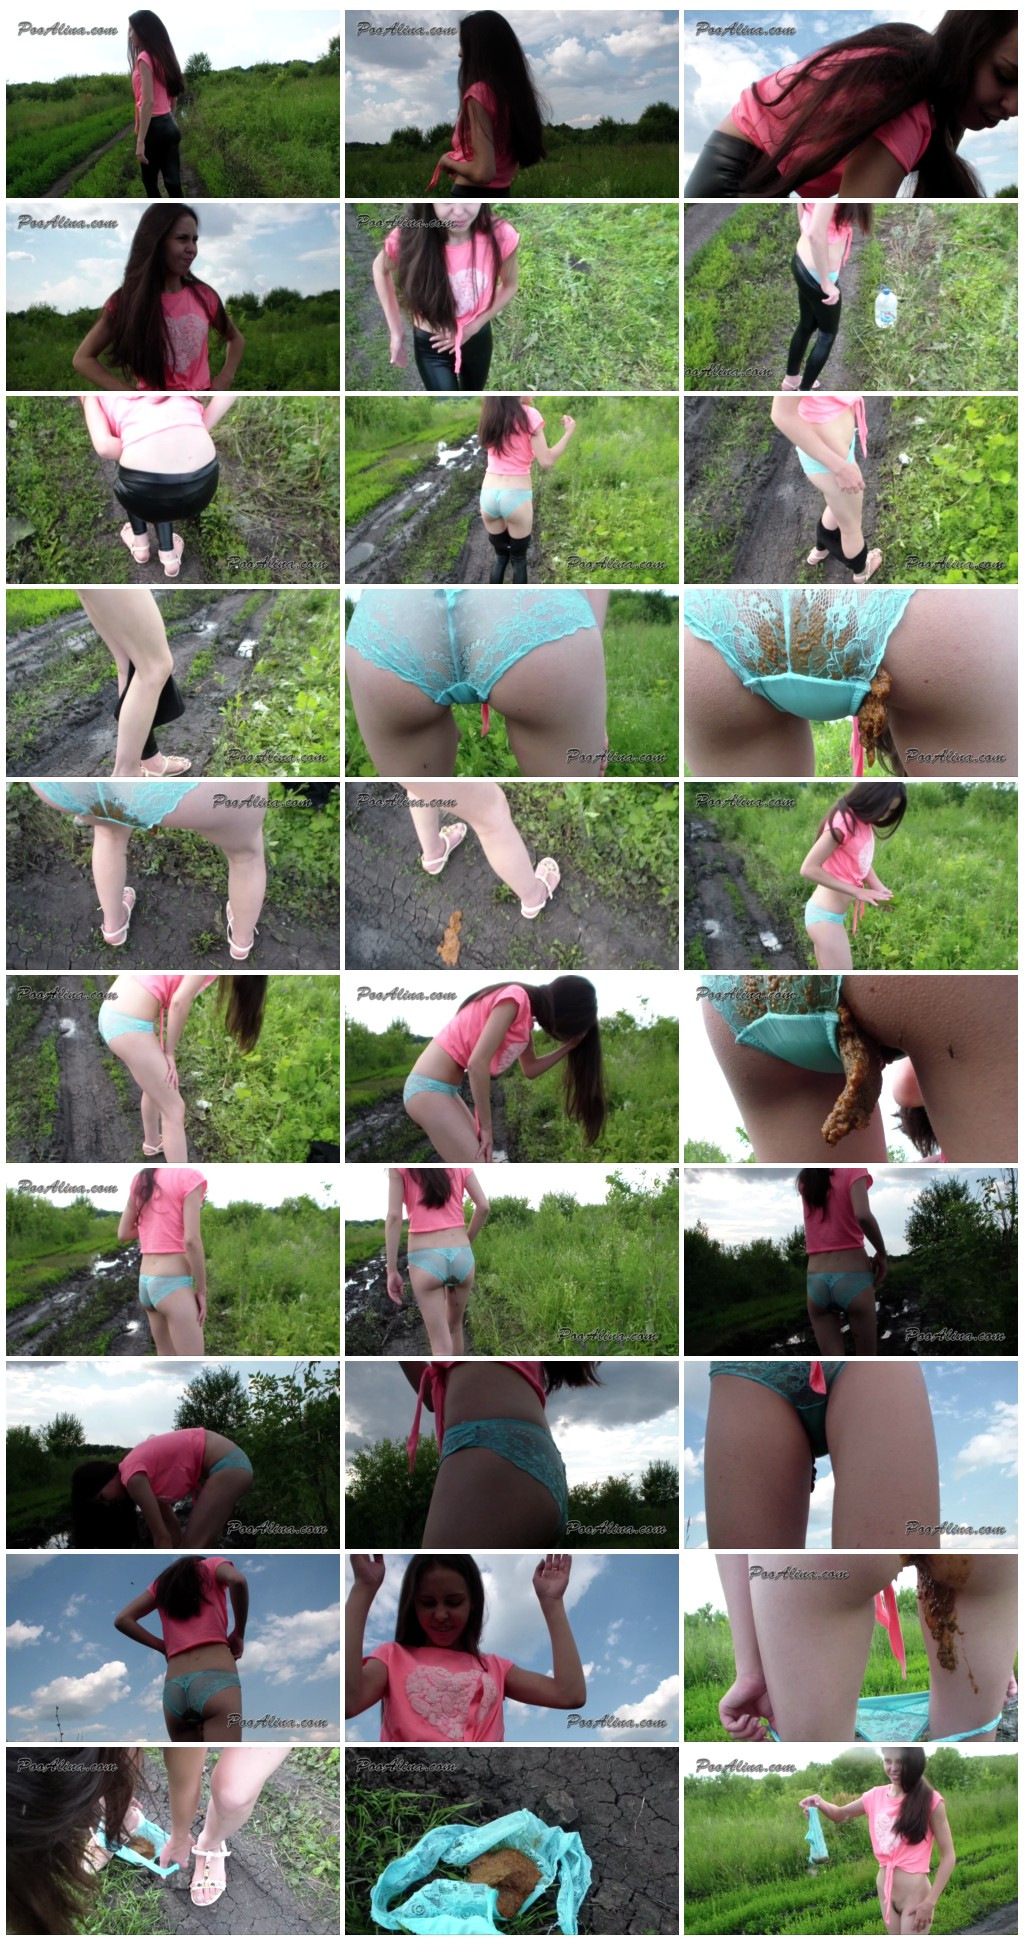 Alina pooping in panties in nature and walking Scat solo shit defecation Masturbation Panty pooping Big ShitDirty Ass thumb - Alina pooping in panties in nature and walking [Scat solo, shit,  Masturbation, Panty pooping, Dirty Ass]